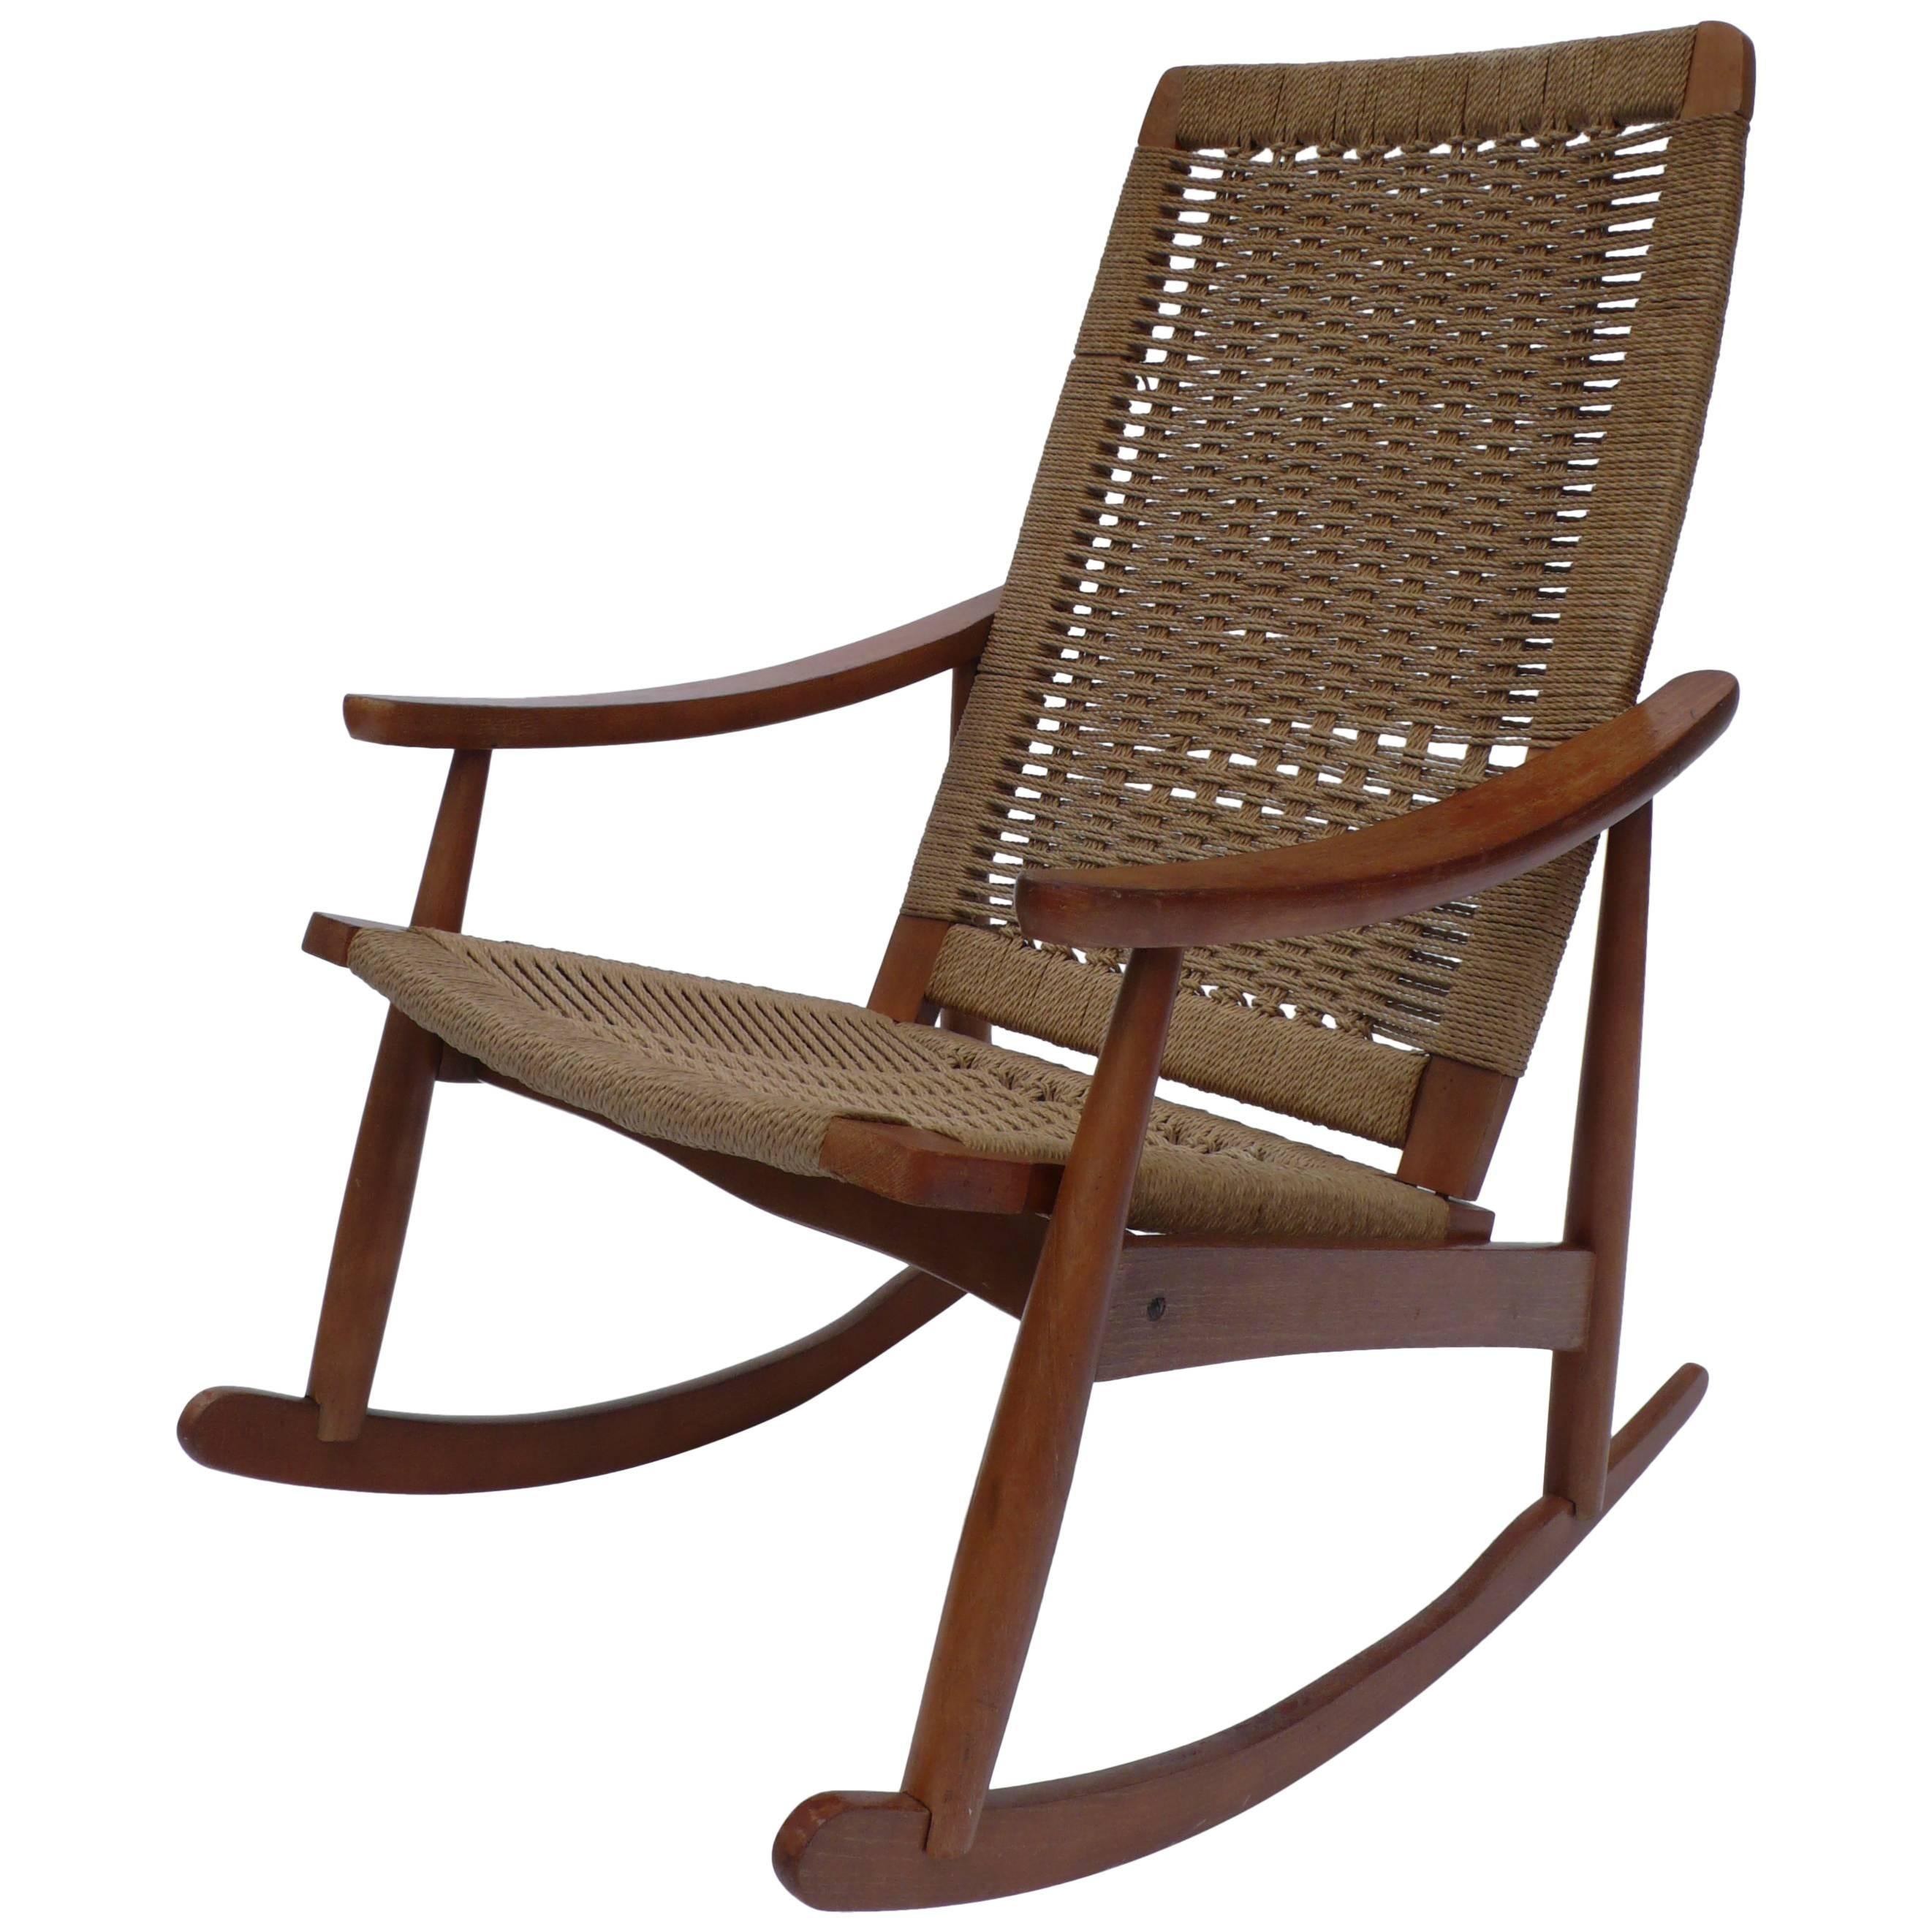 Midcentury Rocking Chair Made In Yugoslavia For Sale